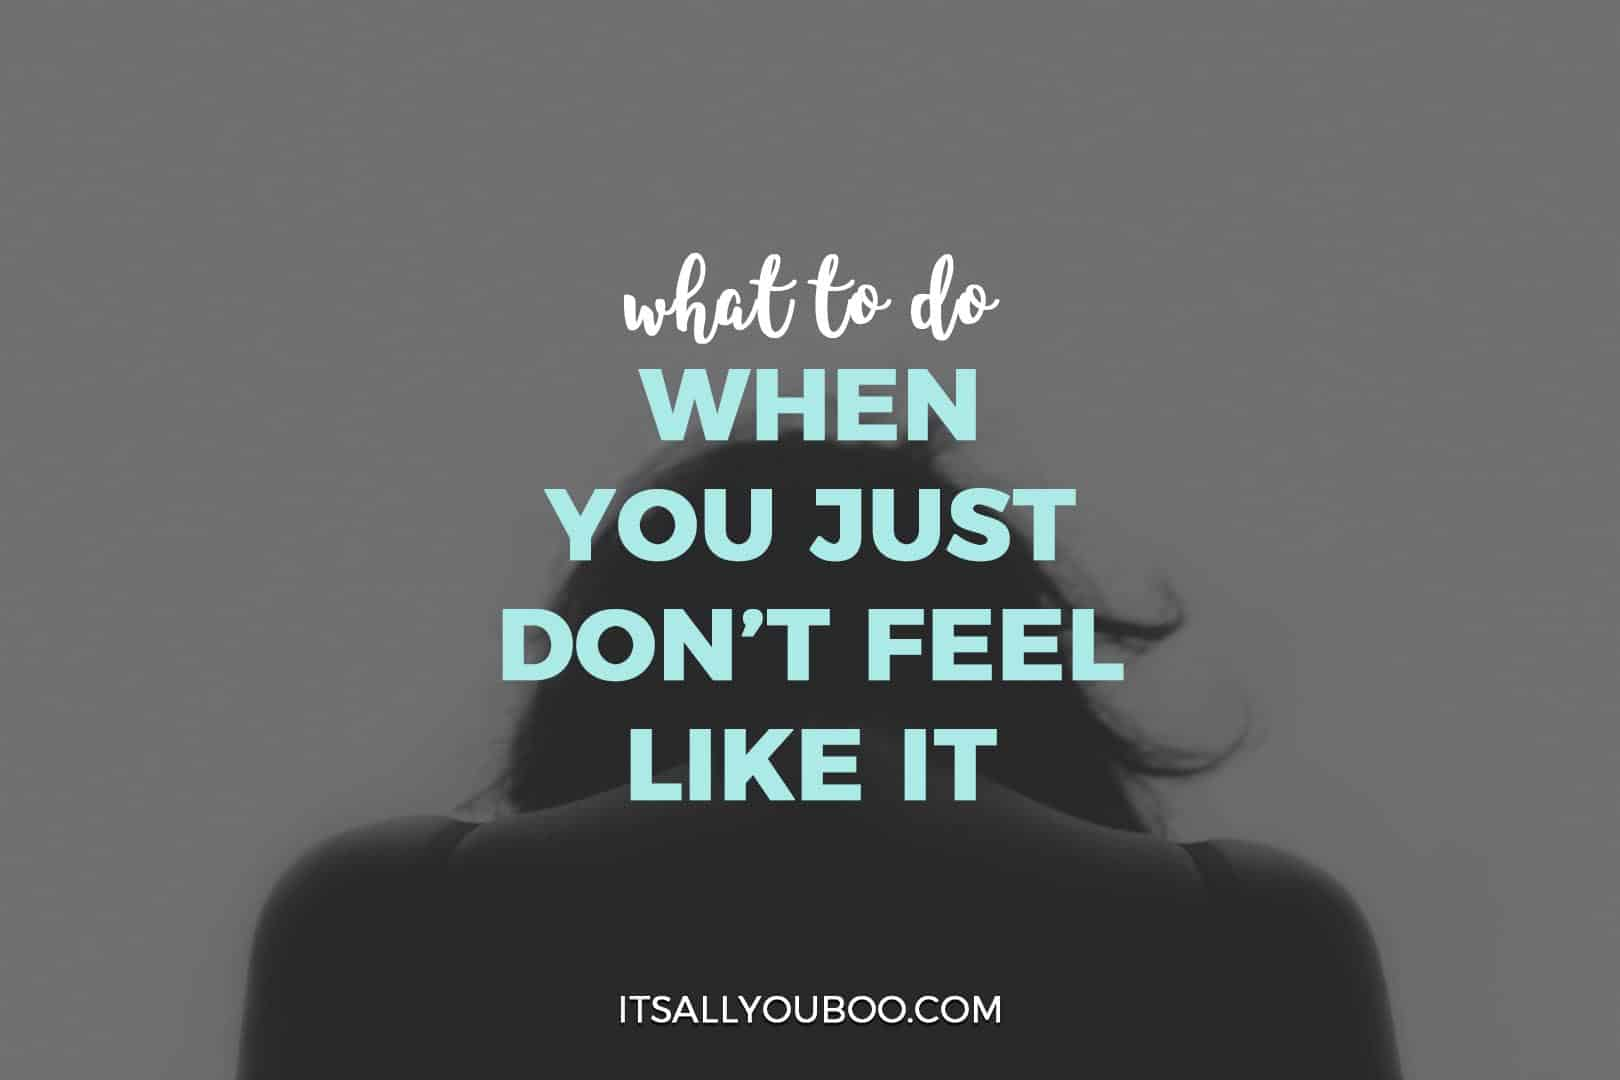 What to do when you just don't feel like it